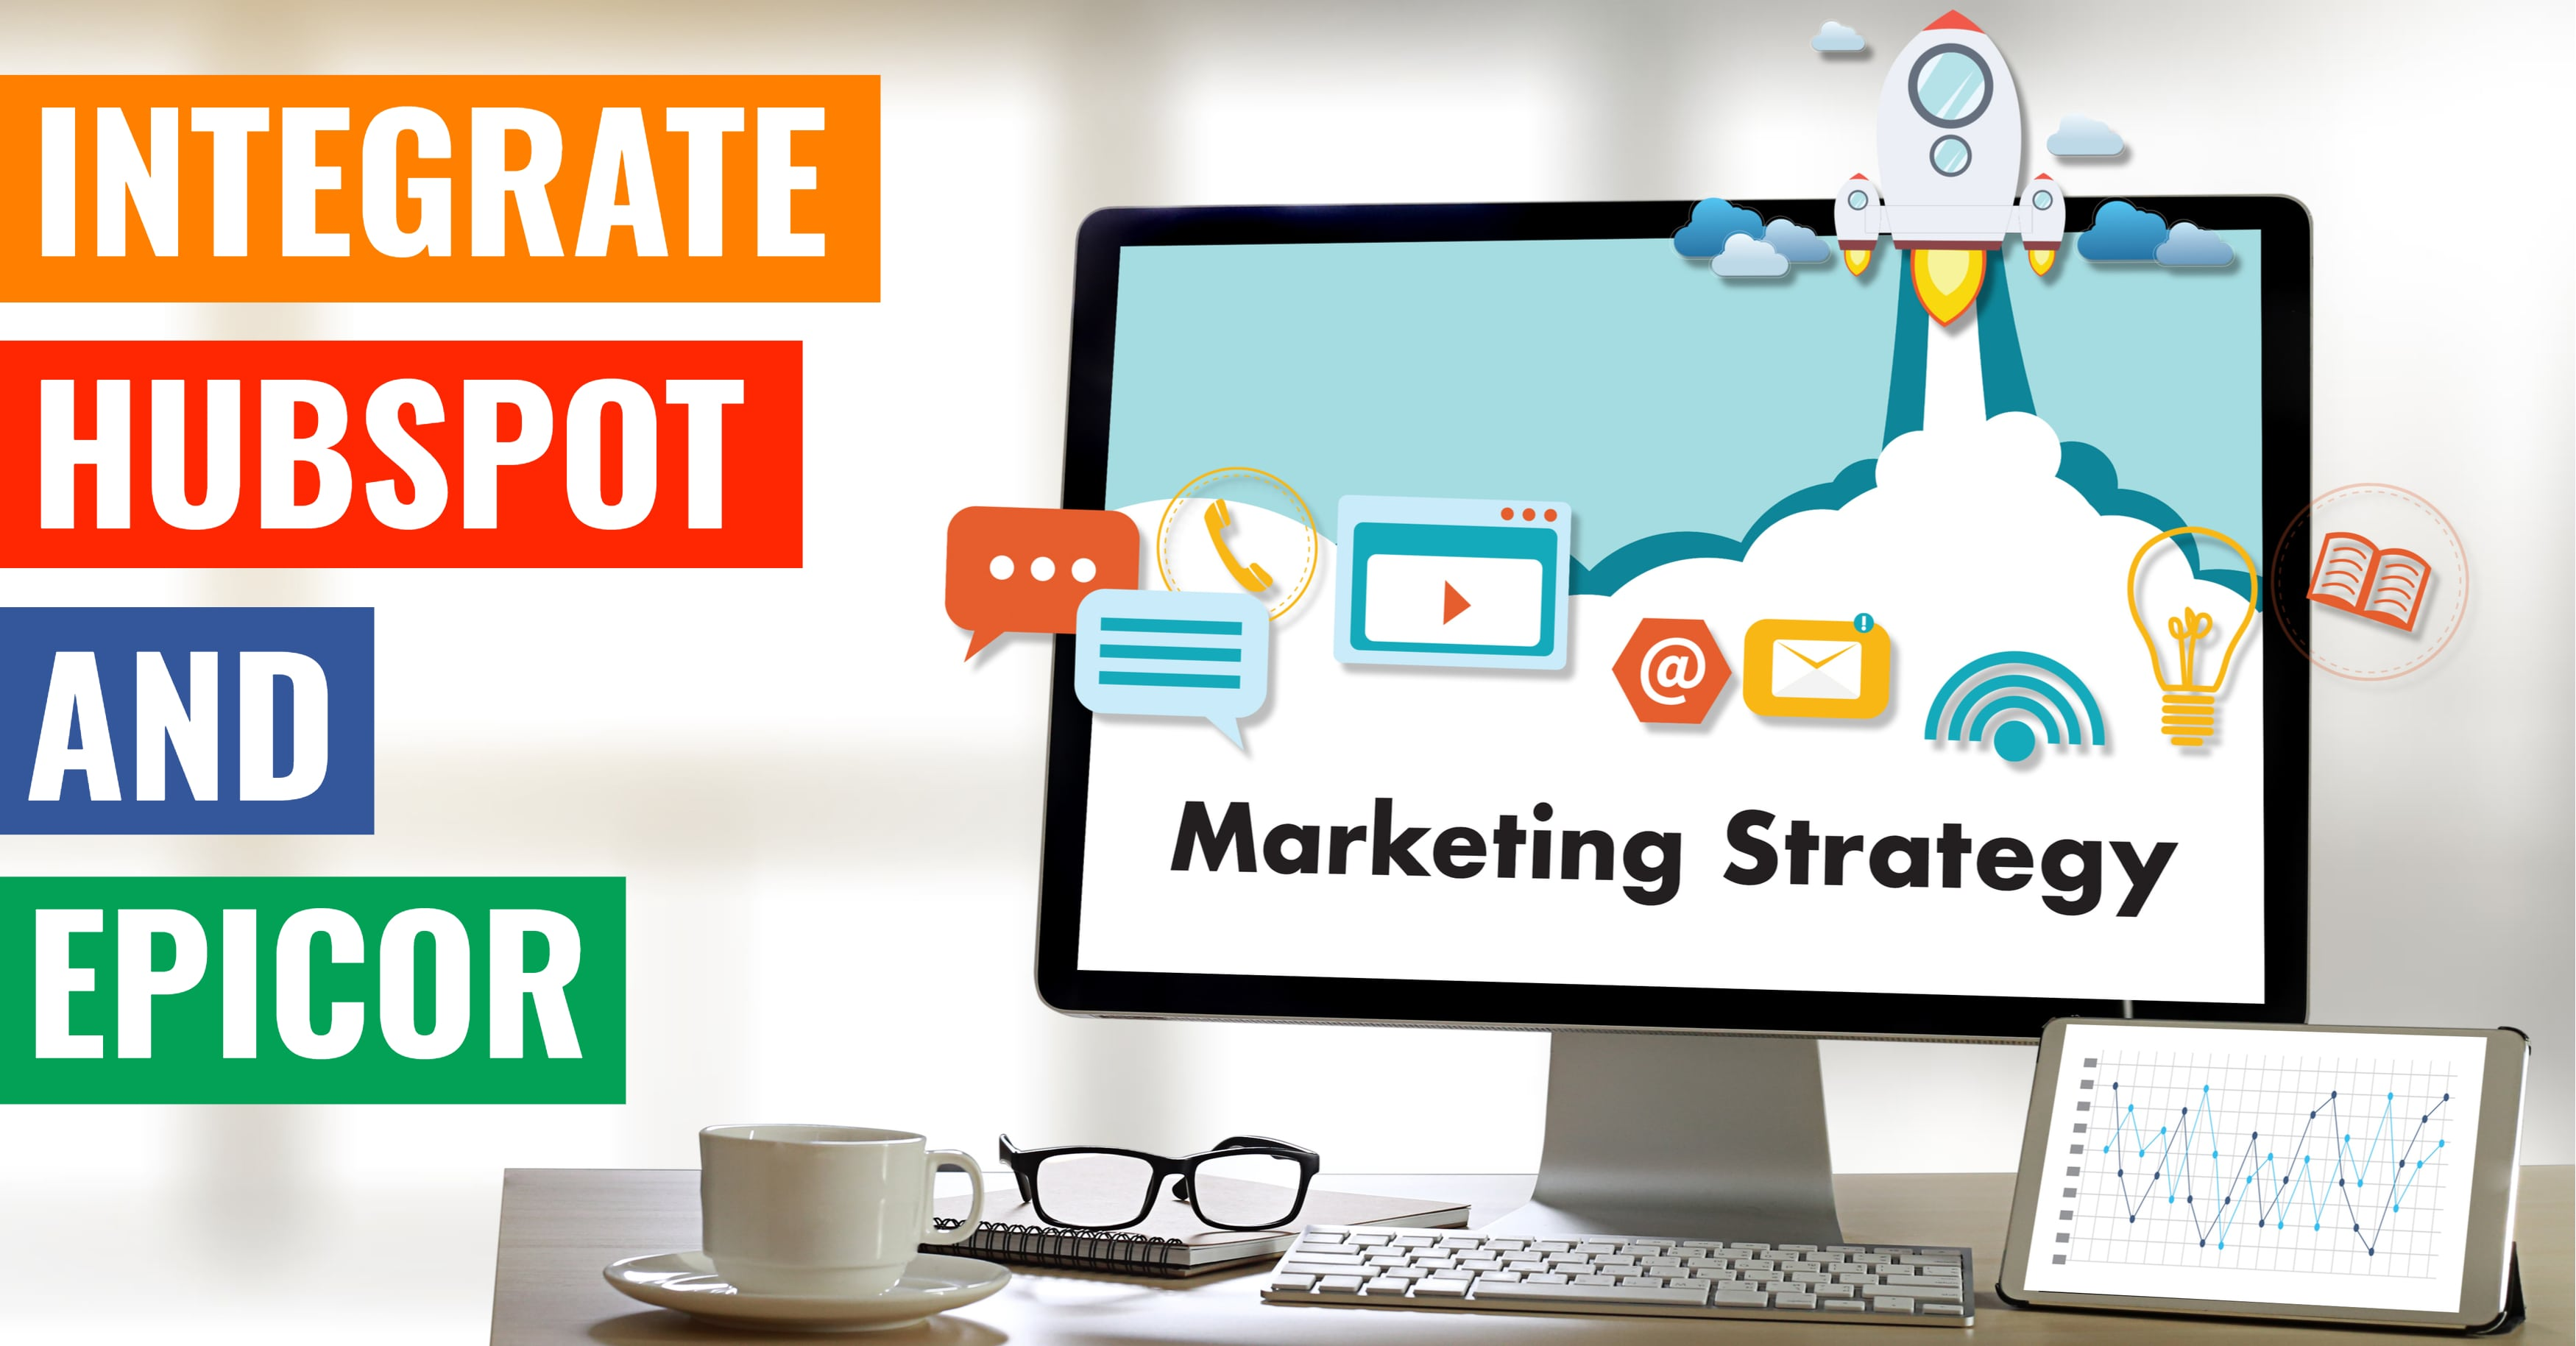 Boost Your Marketing Strategy: Integrate HubSpot and Epicor